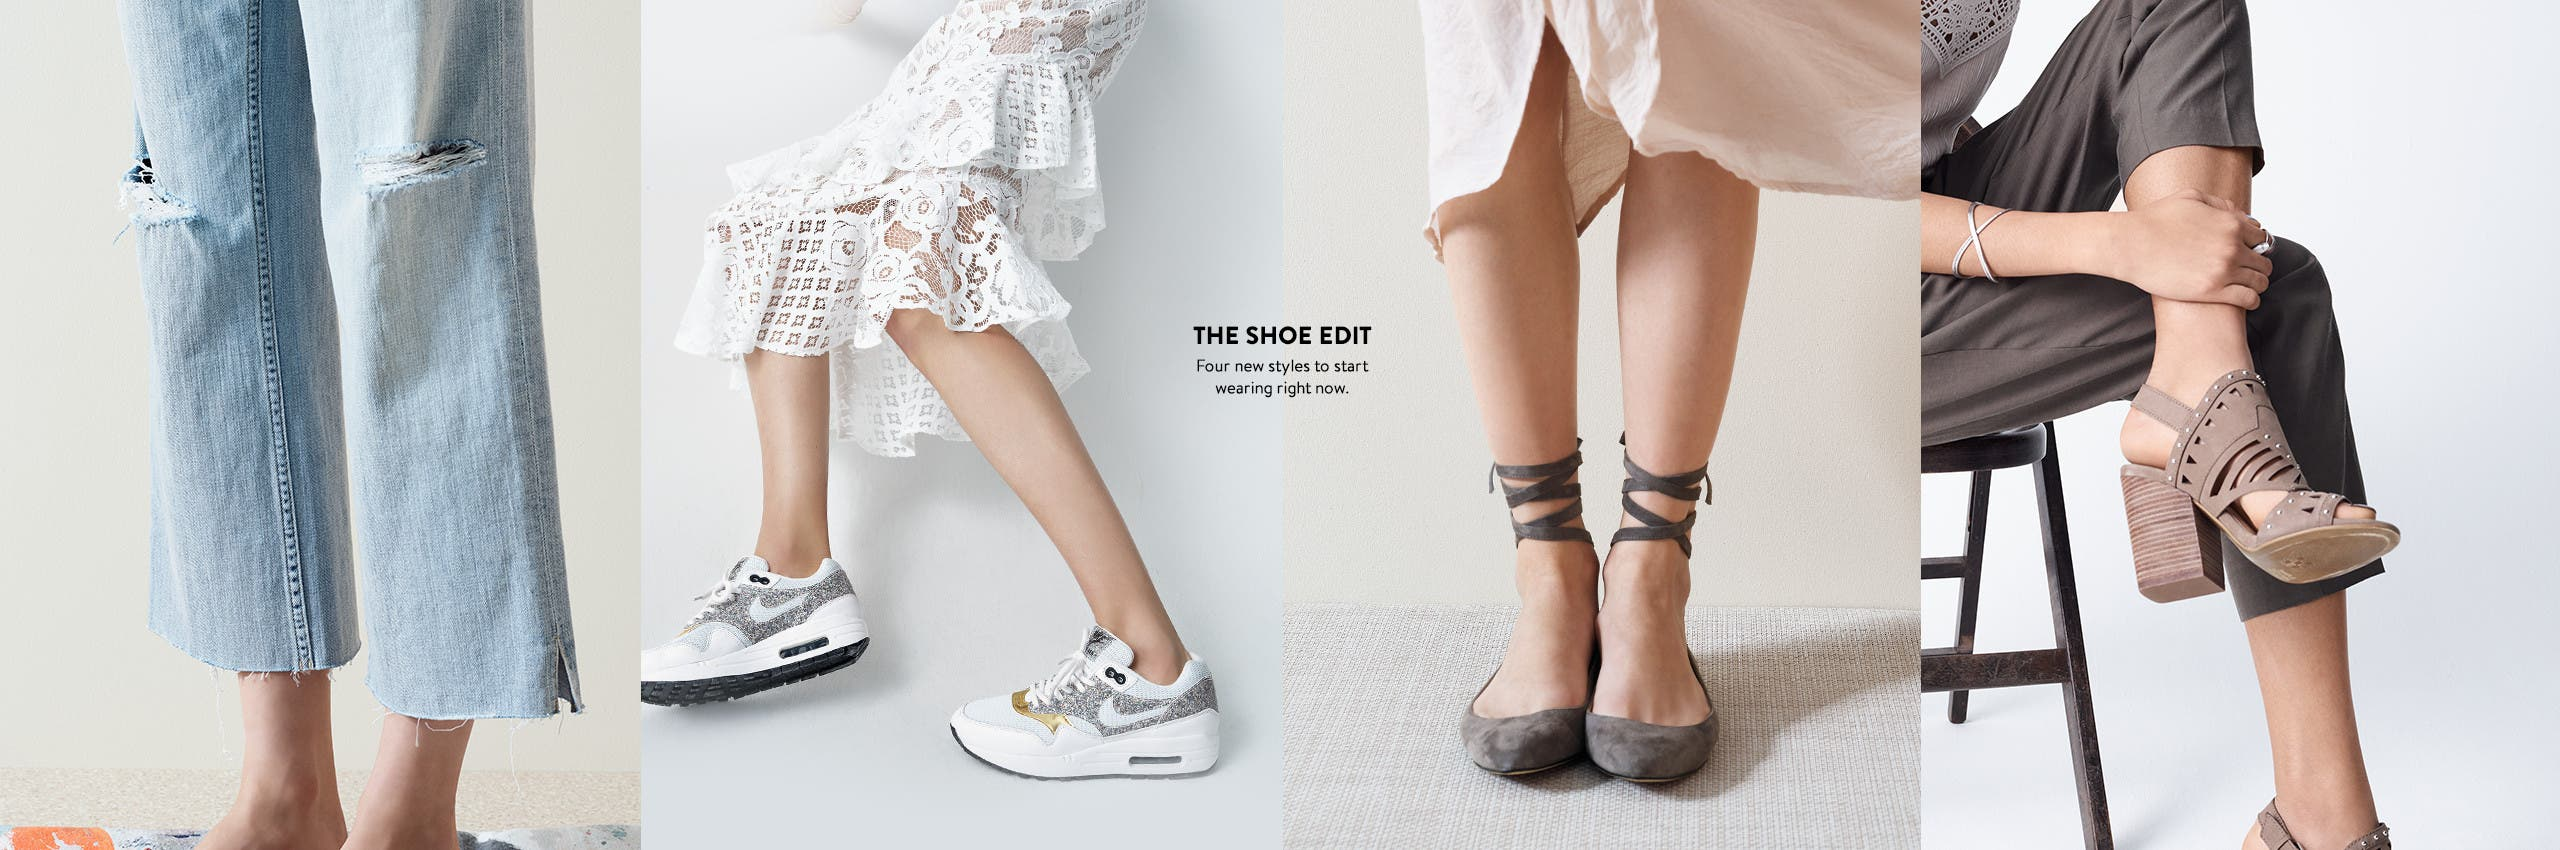 The shoe edit. Four new styles to start wearing right now.